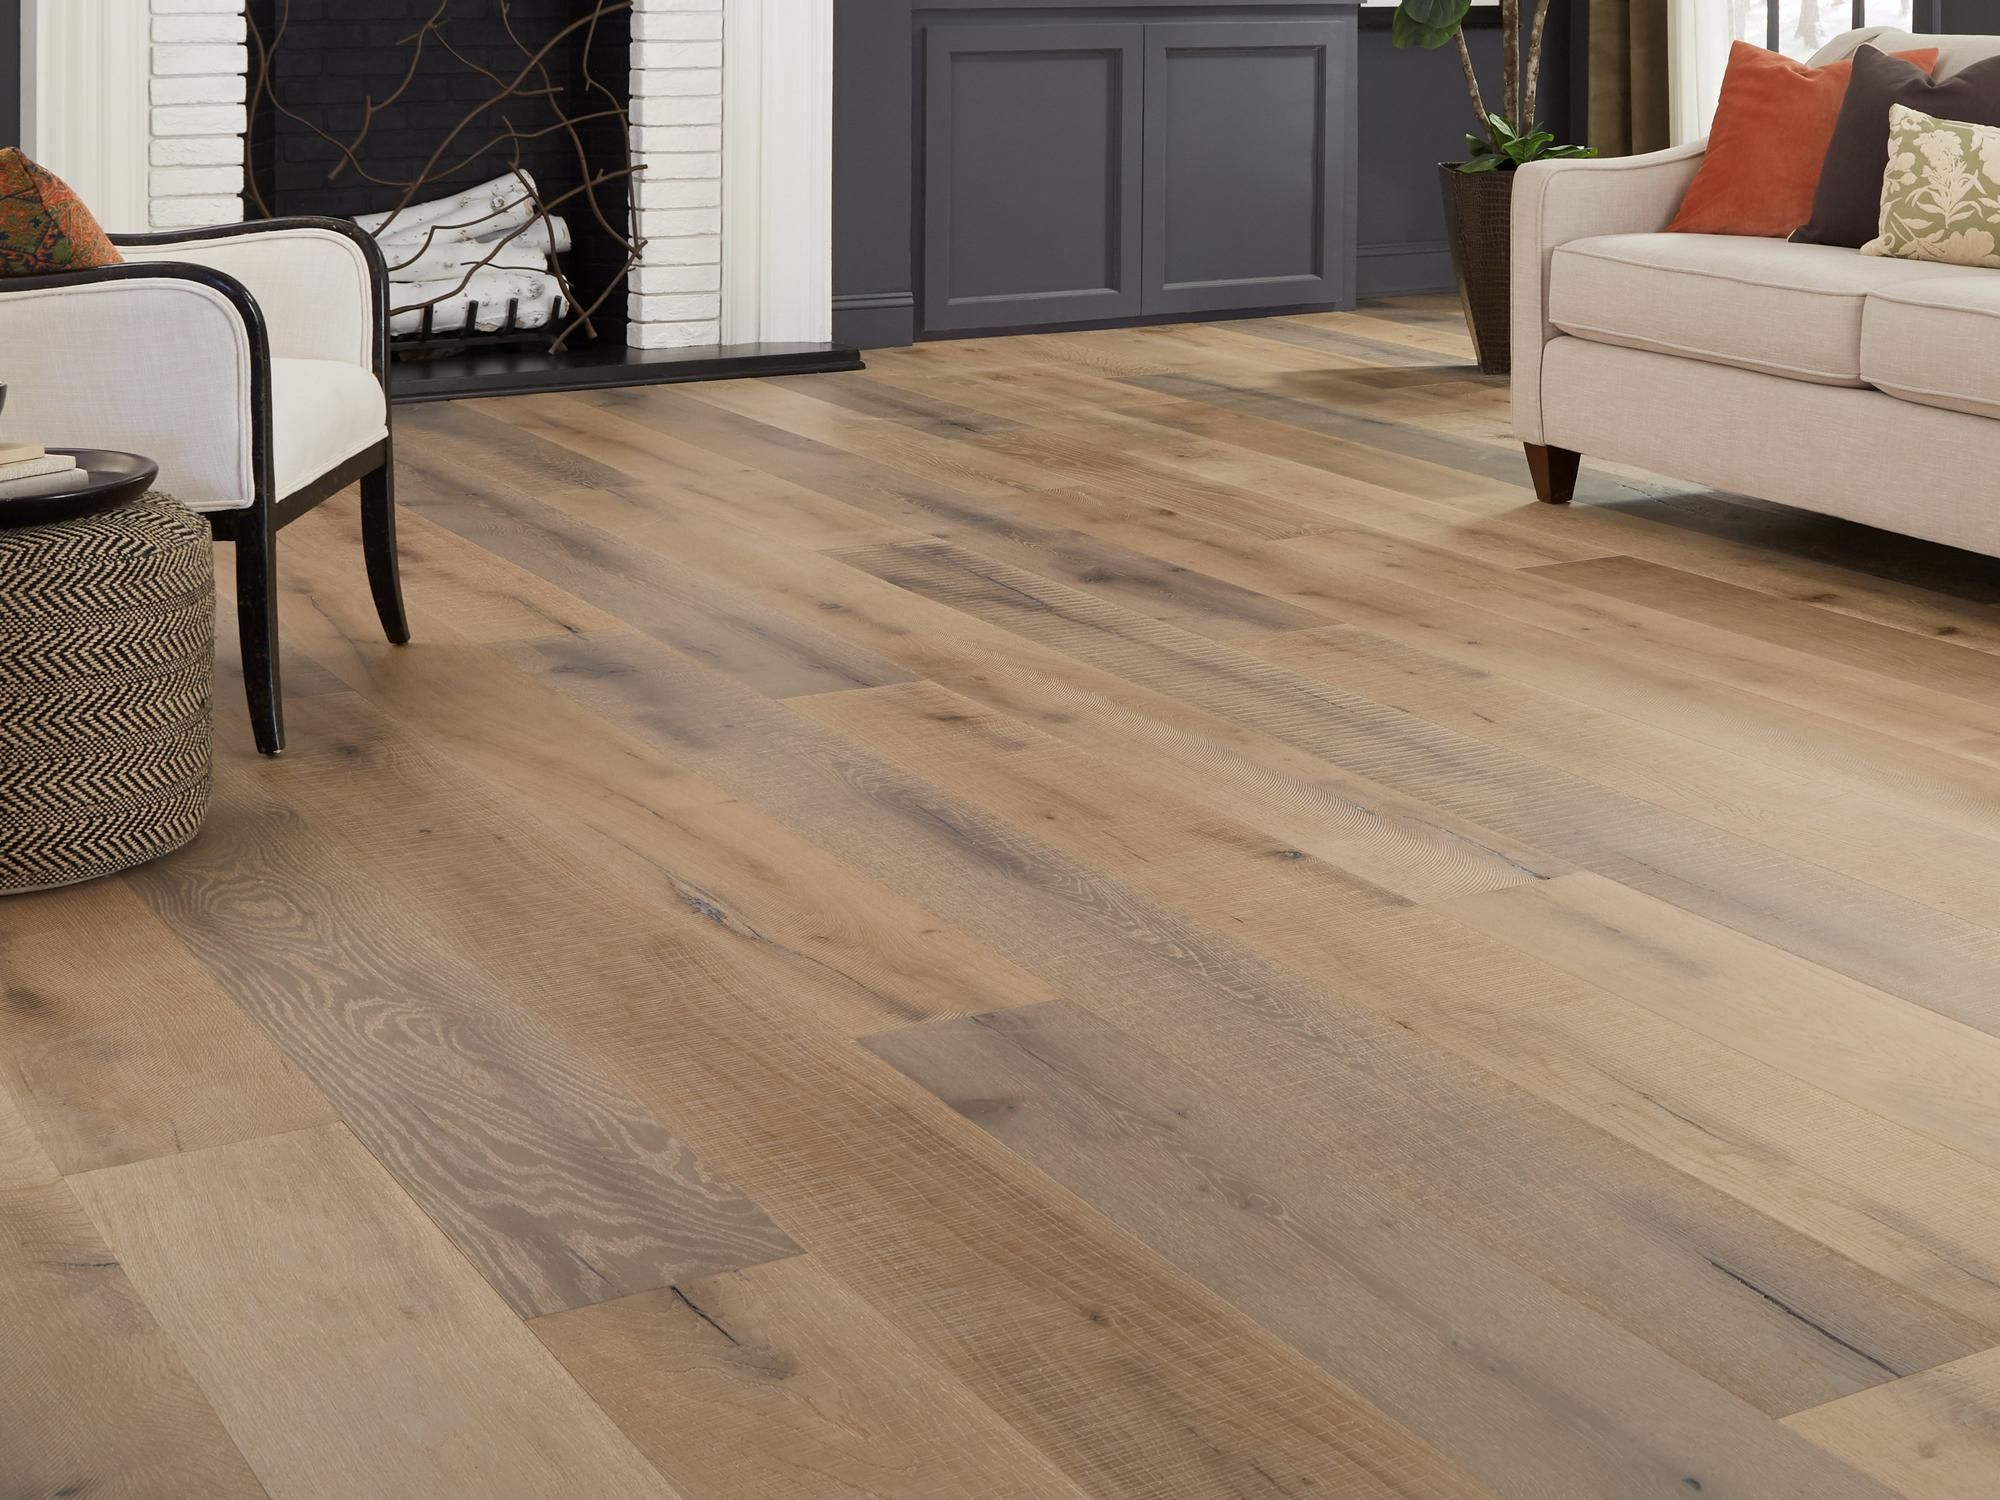 Palomino White Oak Distressed Engineered Hardwood Xl Plank In 2020 White Oak Hardwood Floors White Oak Hardwood Floors Wide Plank Engineered Hardwood Flooring Wide Plank